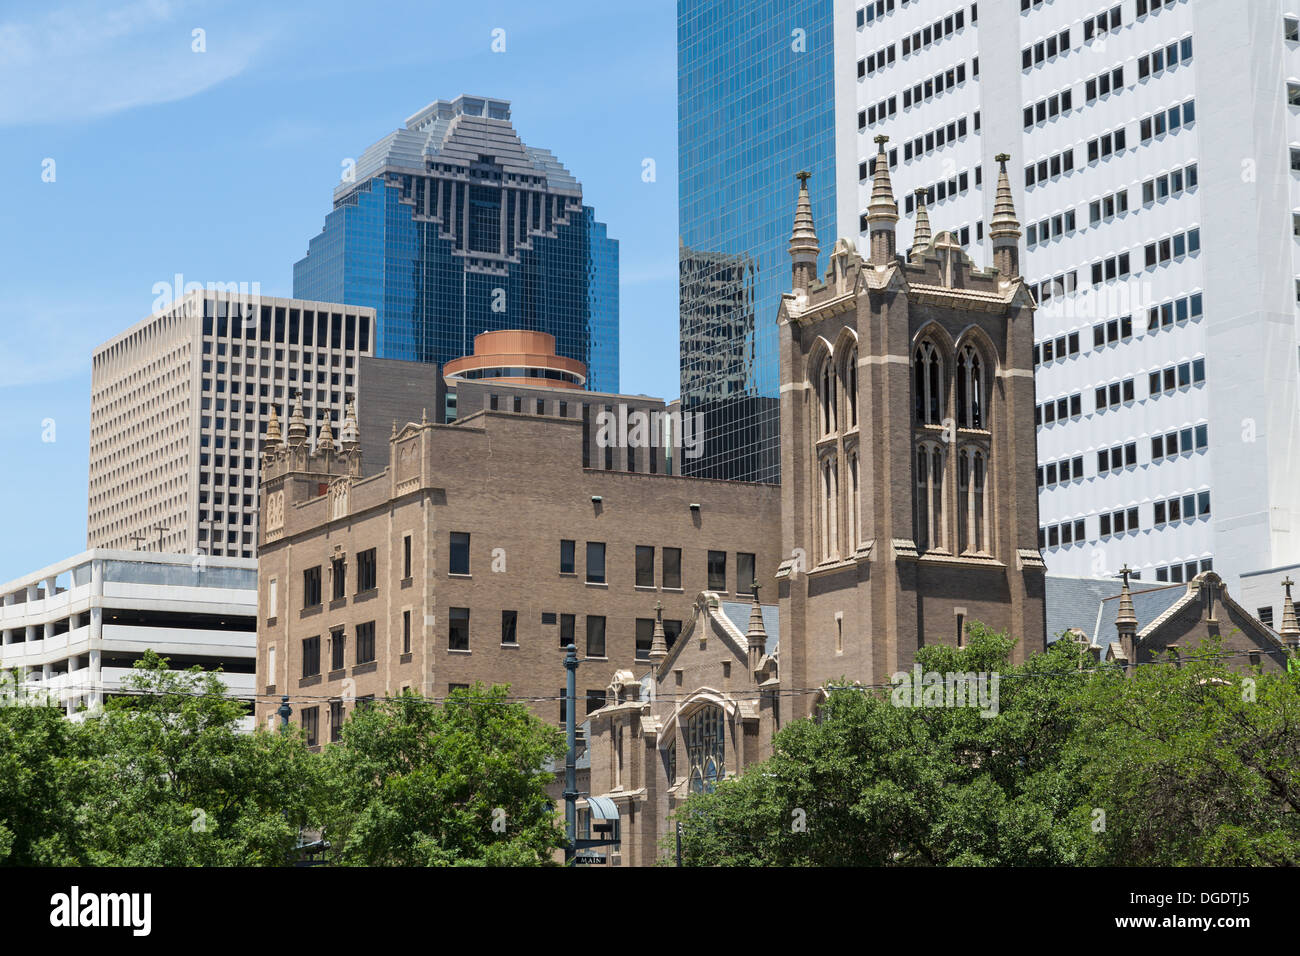 First United Methodist Church Main Street Houston Texas Stock Photo